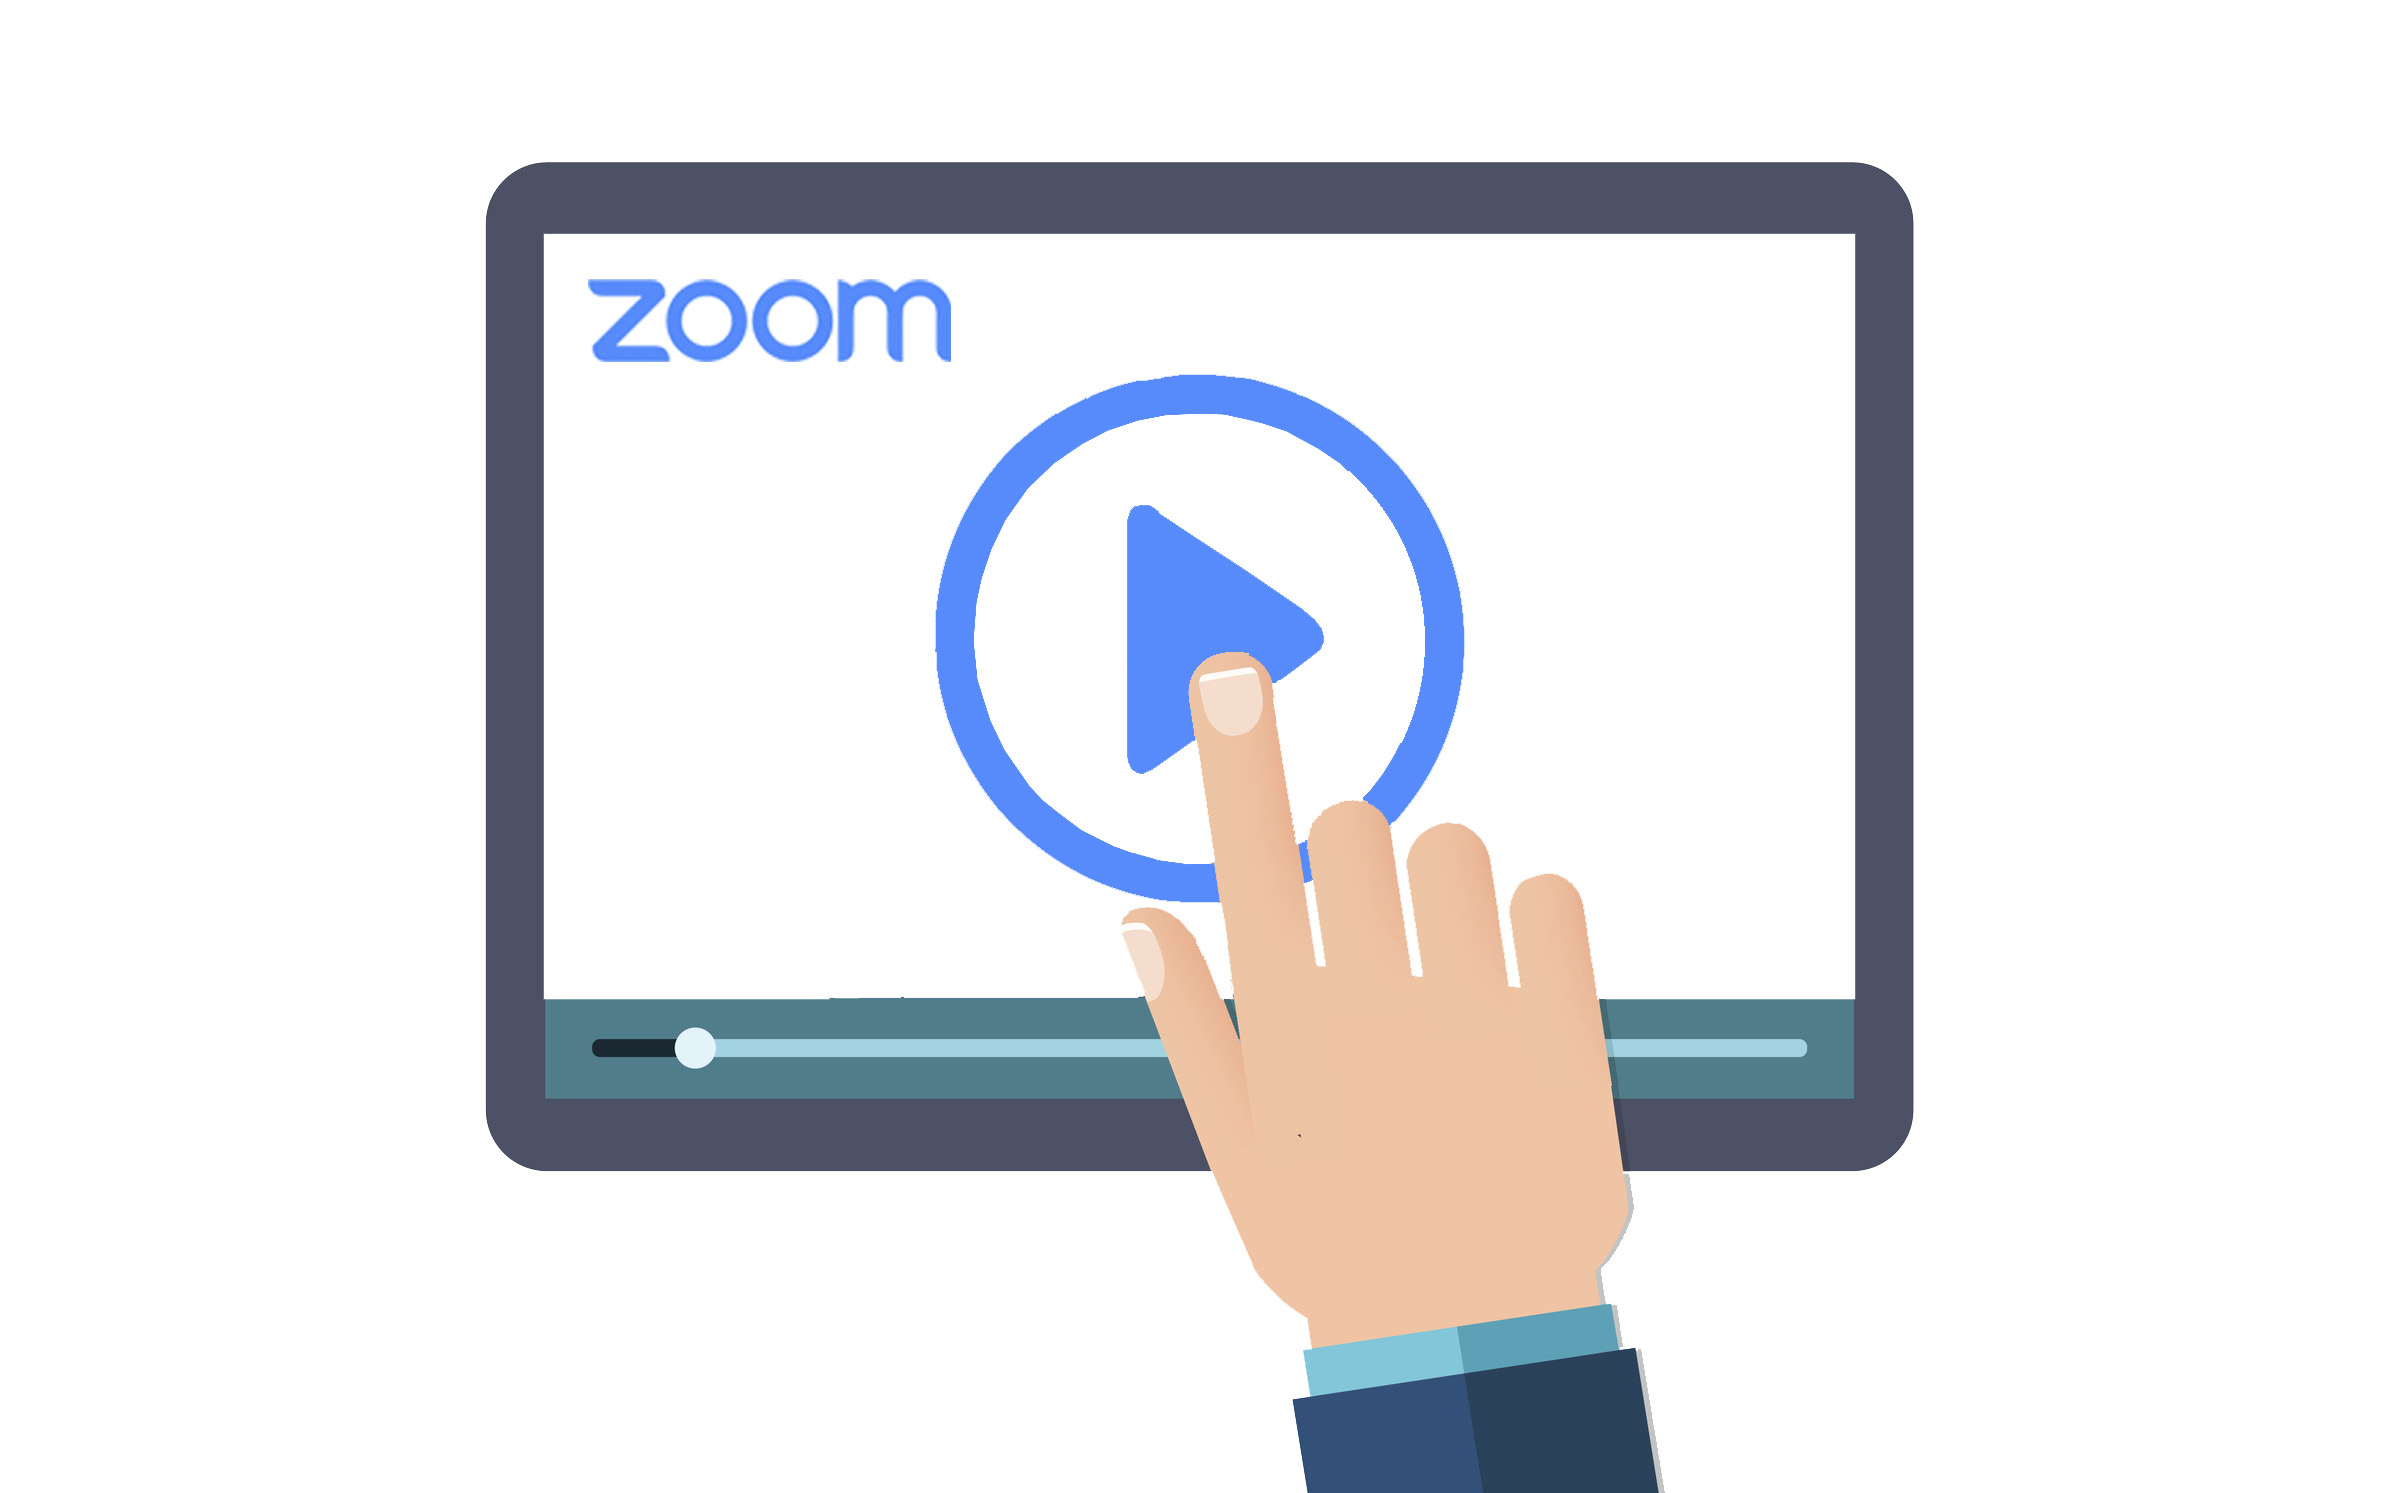 Need Quick Info on How to Zoom? Check Out These New Videos - Zoom Blog